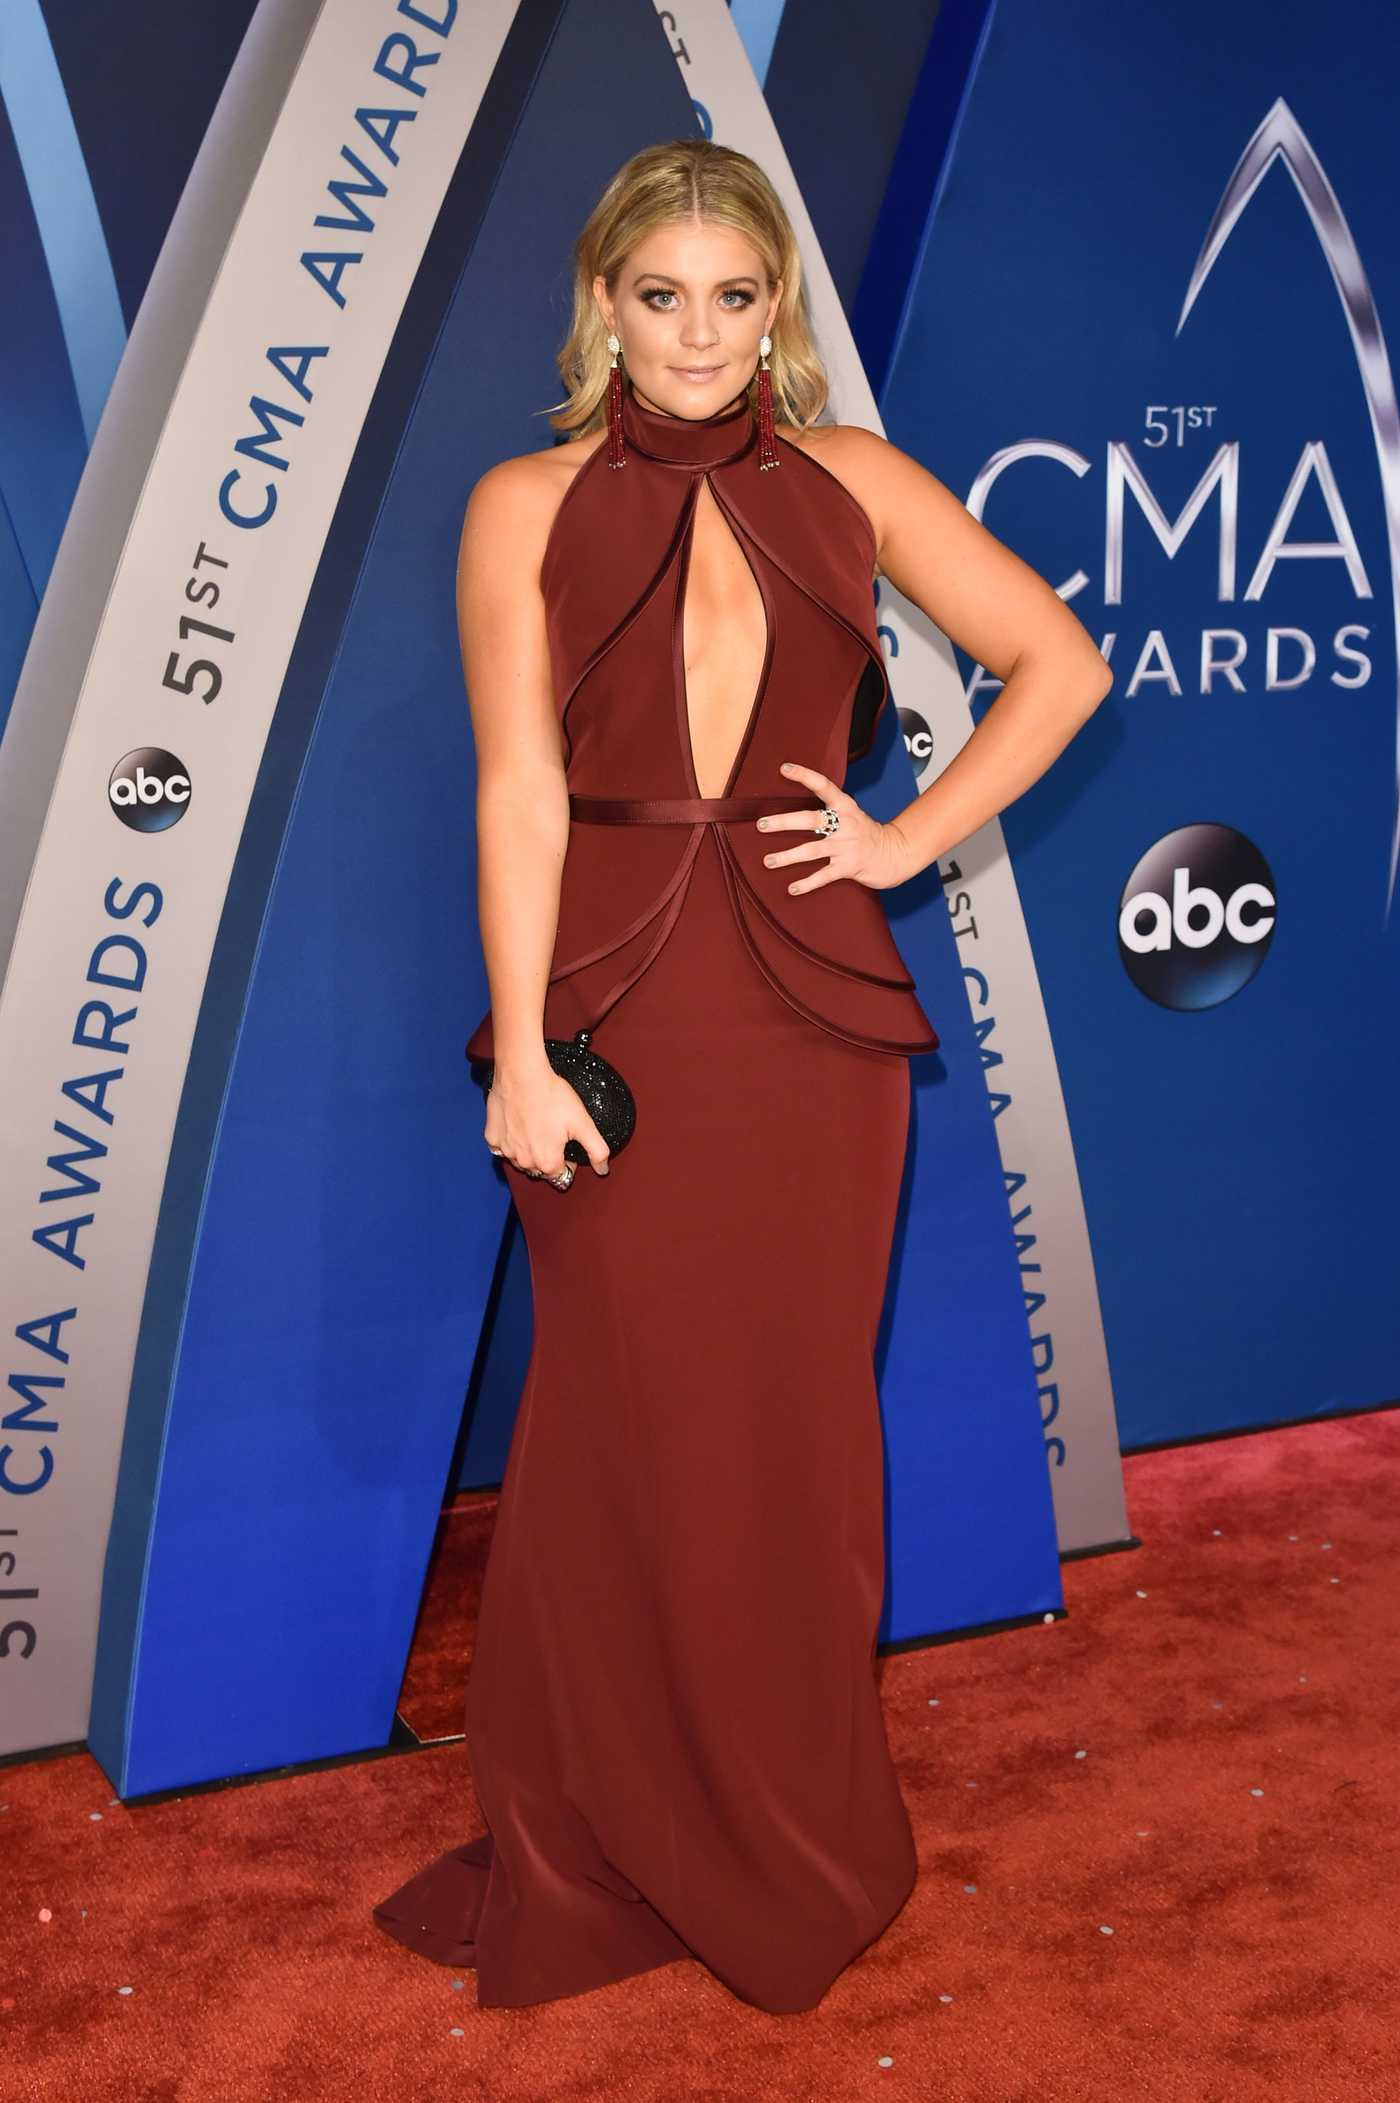 Lauren Alaina at the 51st Annual CMA Awards at the Bridgestone Arena in Nashville 11/08/2017